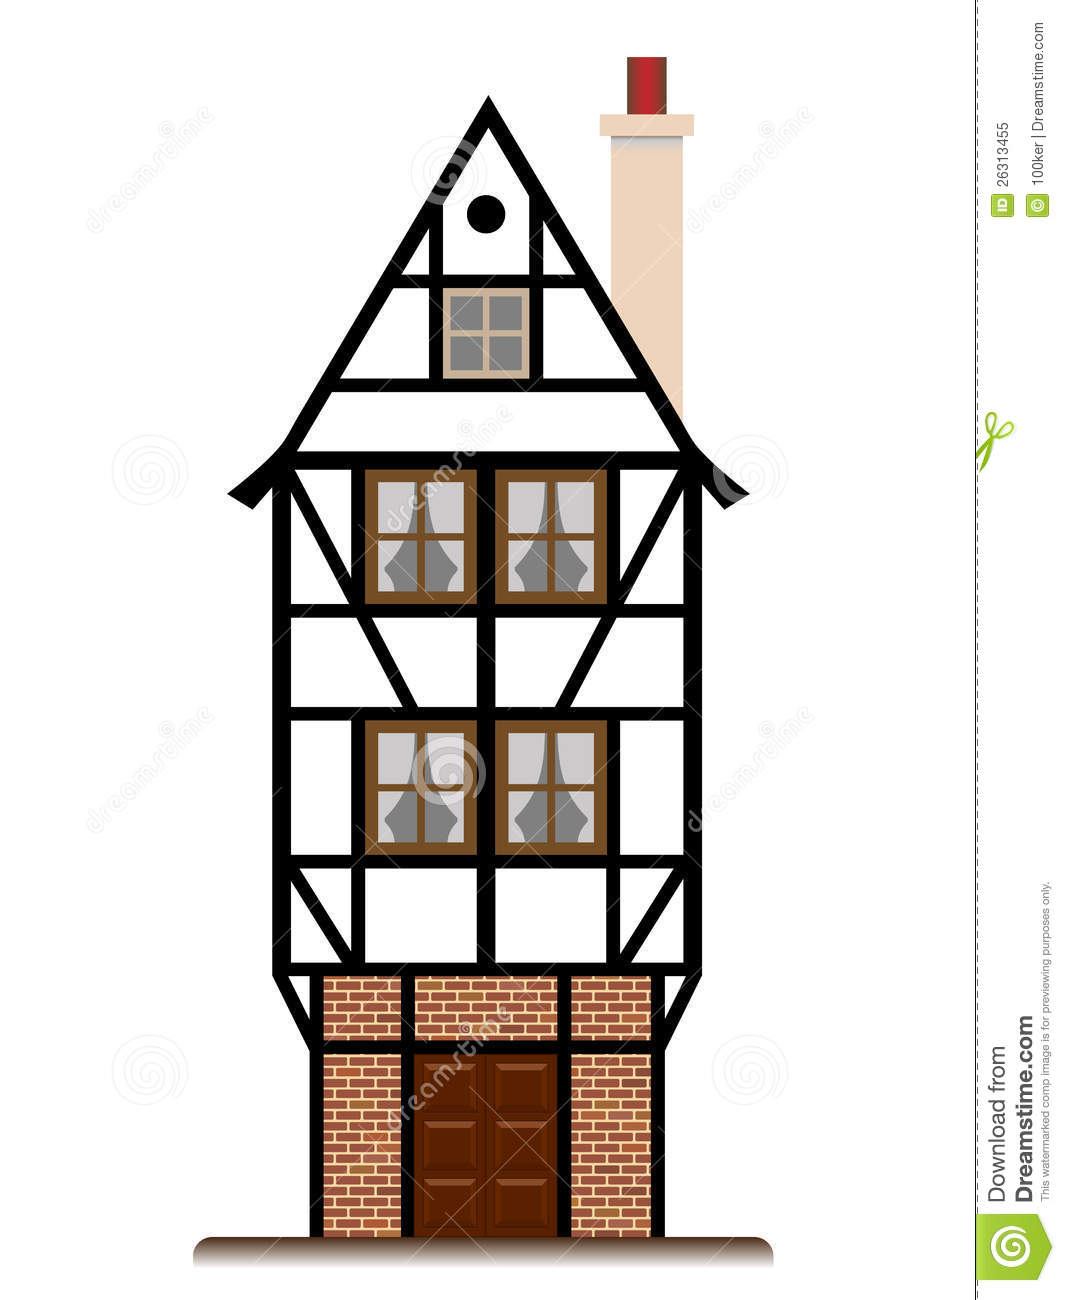 Fachwerk house traditional cottage isolated royalty free for 3d fachwerk